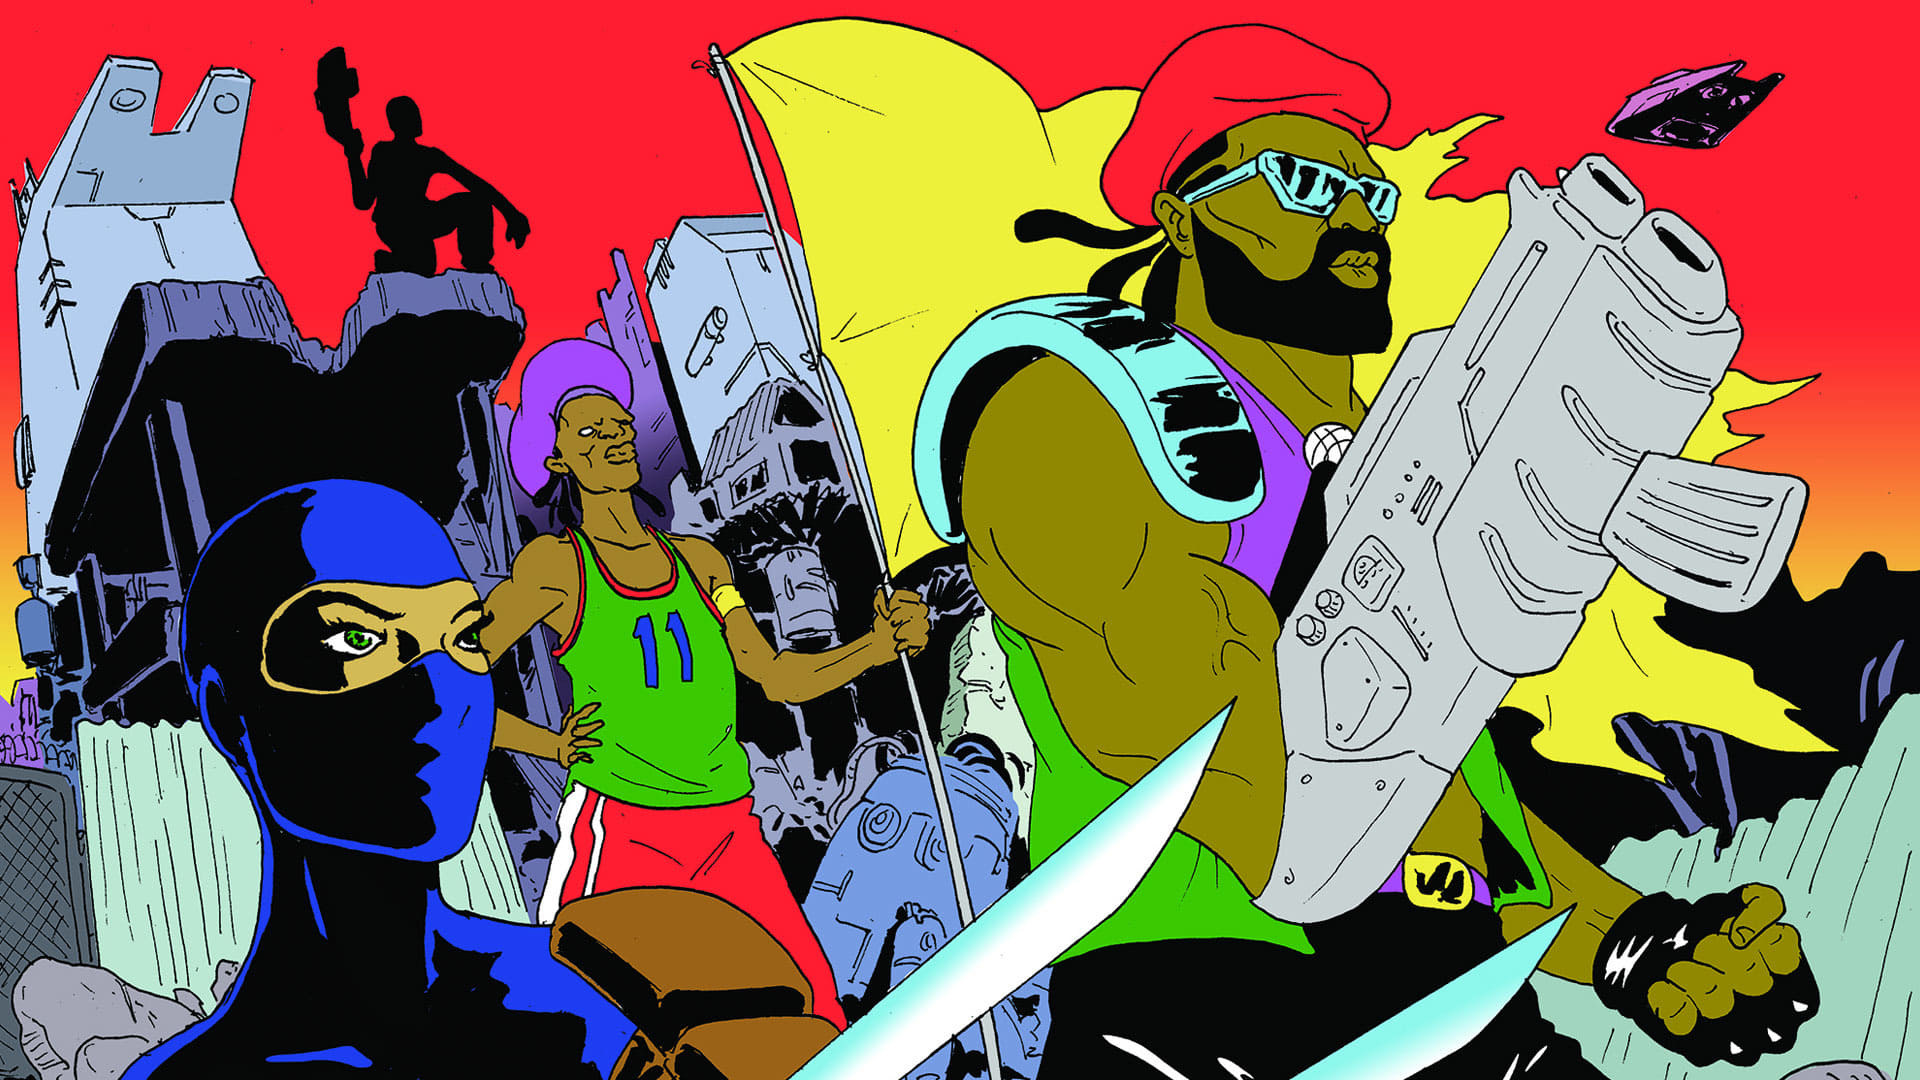 The Major Lazer TV show will be available in full on YouTube this month